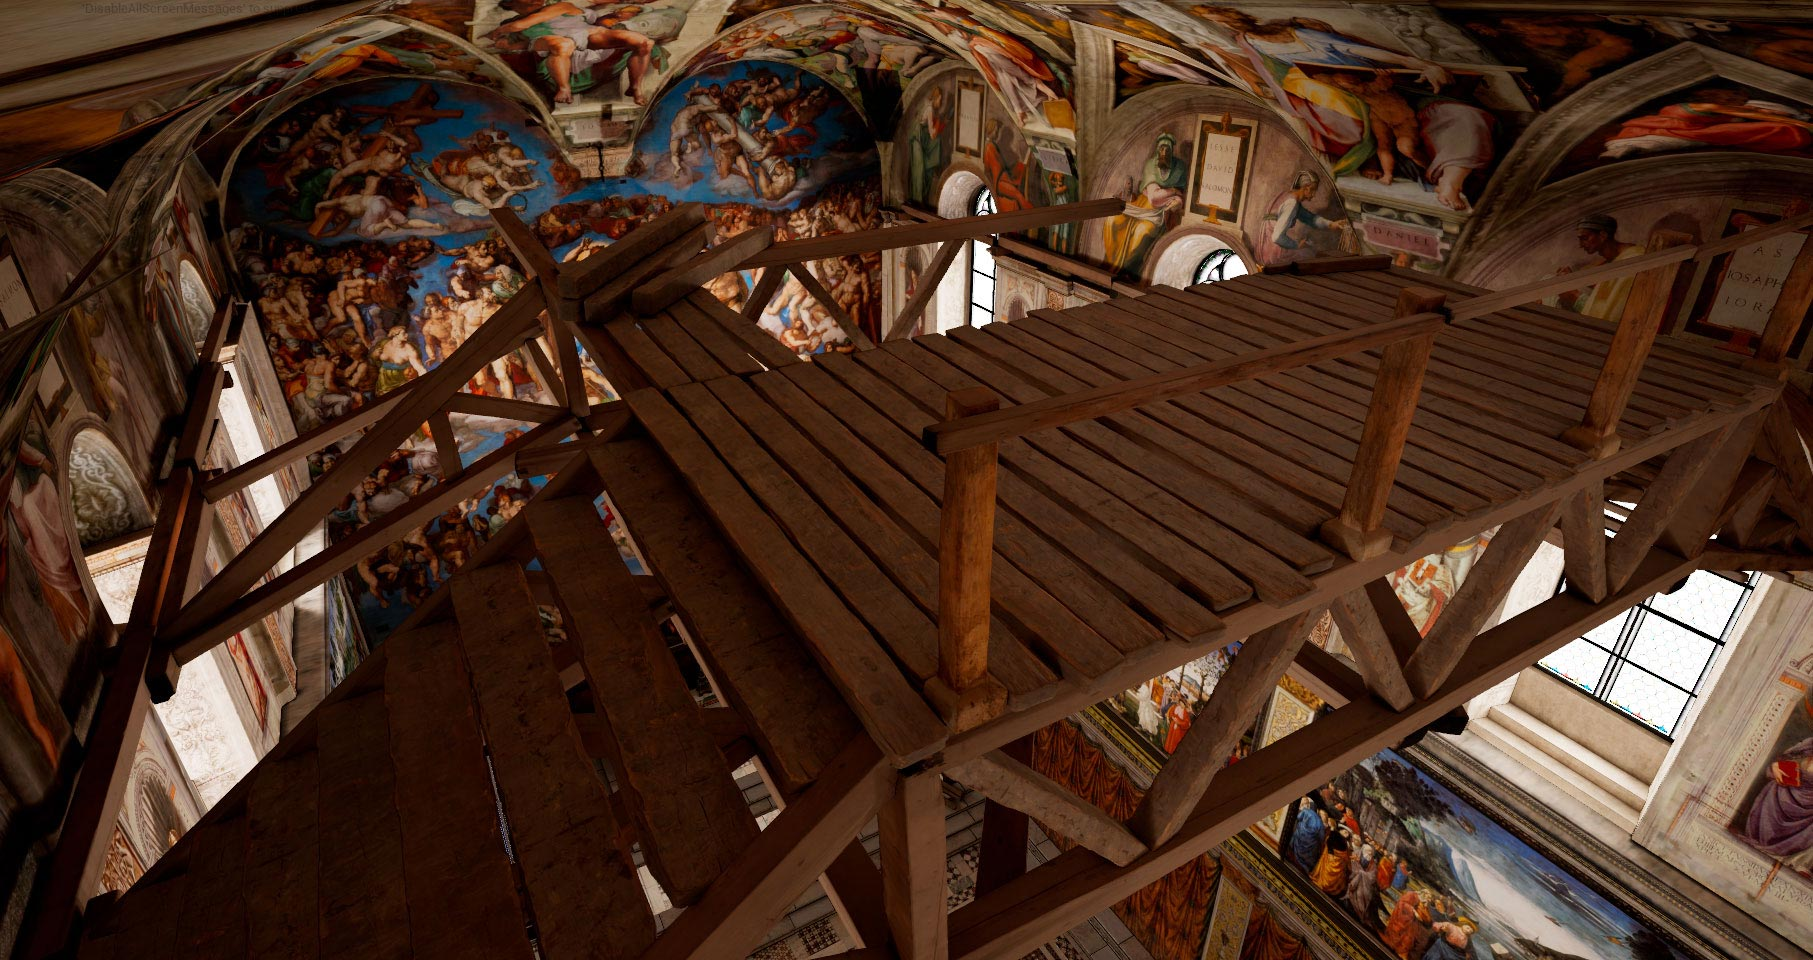 Explore the Sistine Chapel painted ceilings in VR